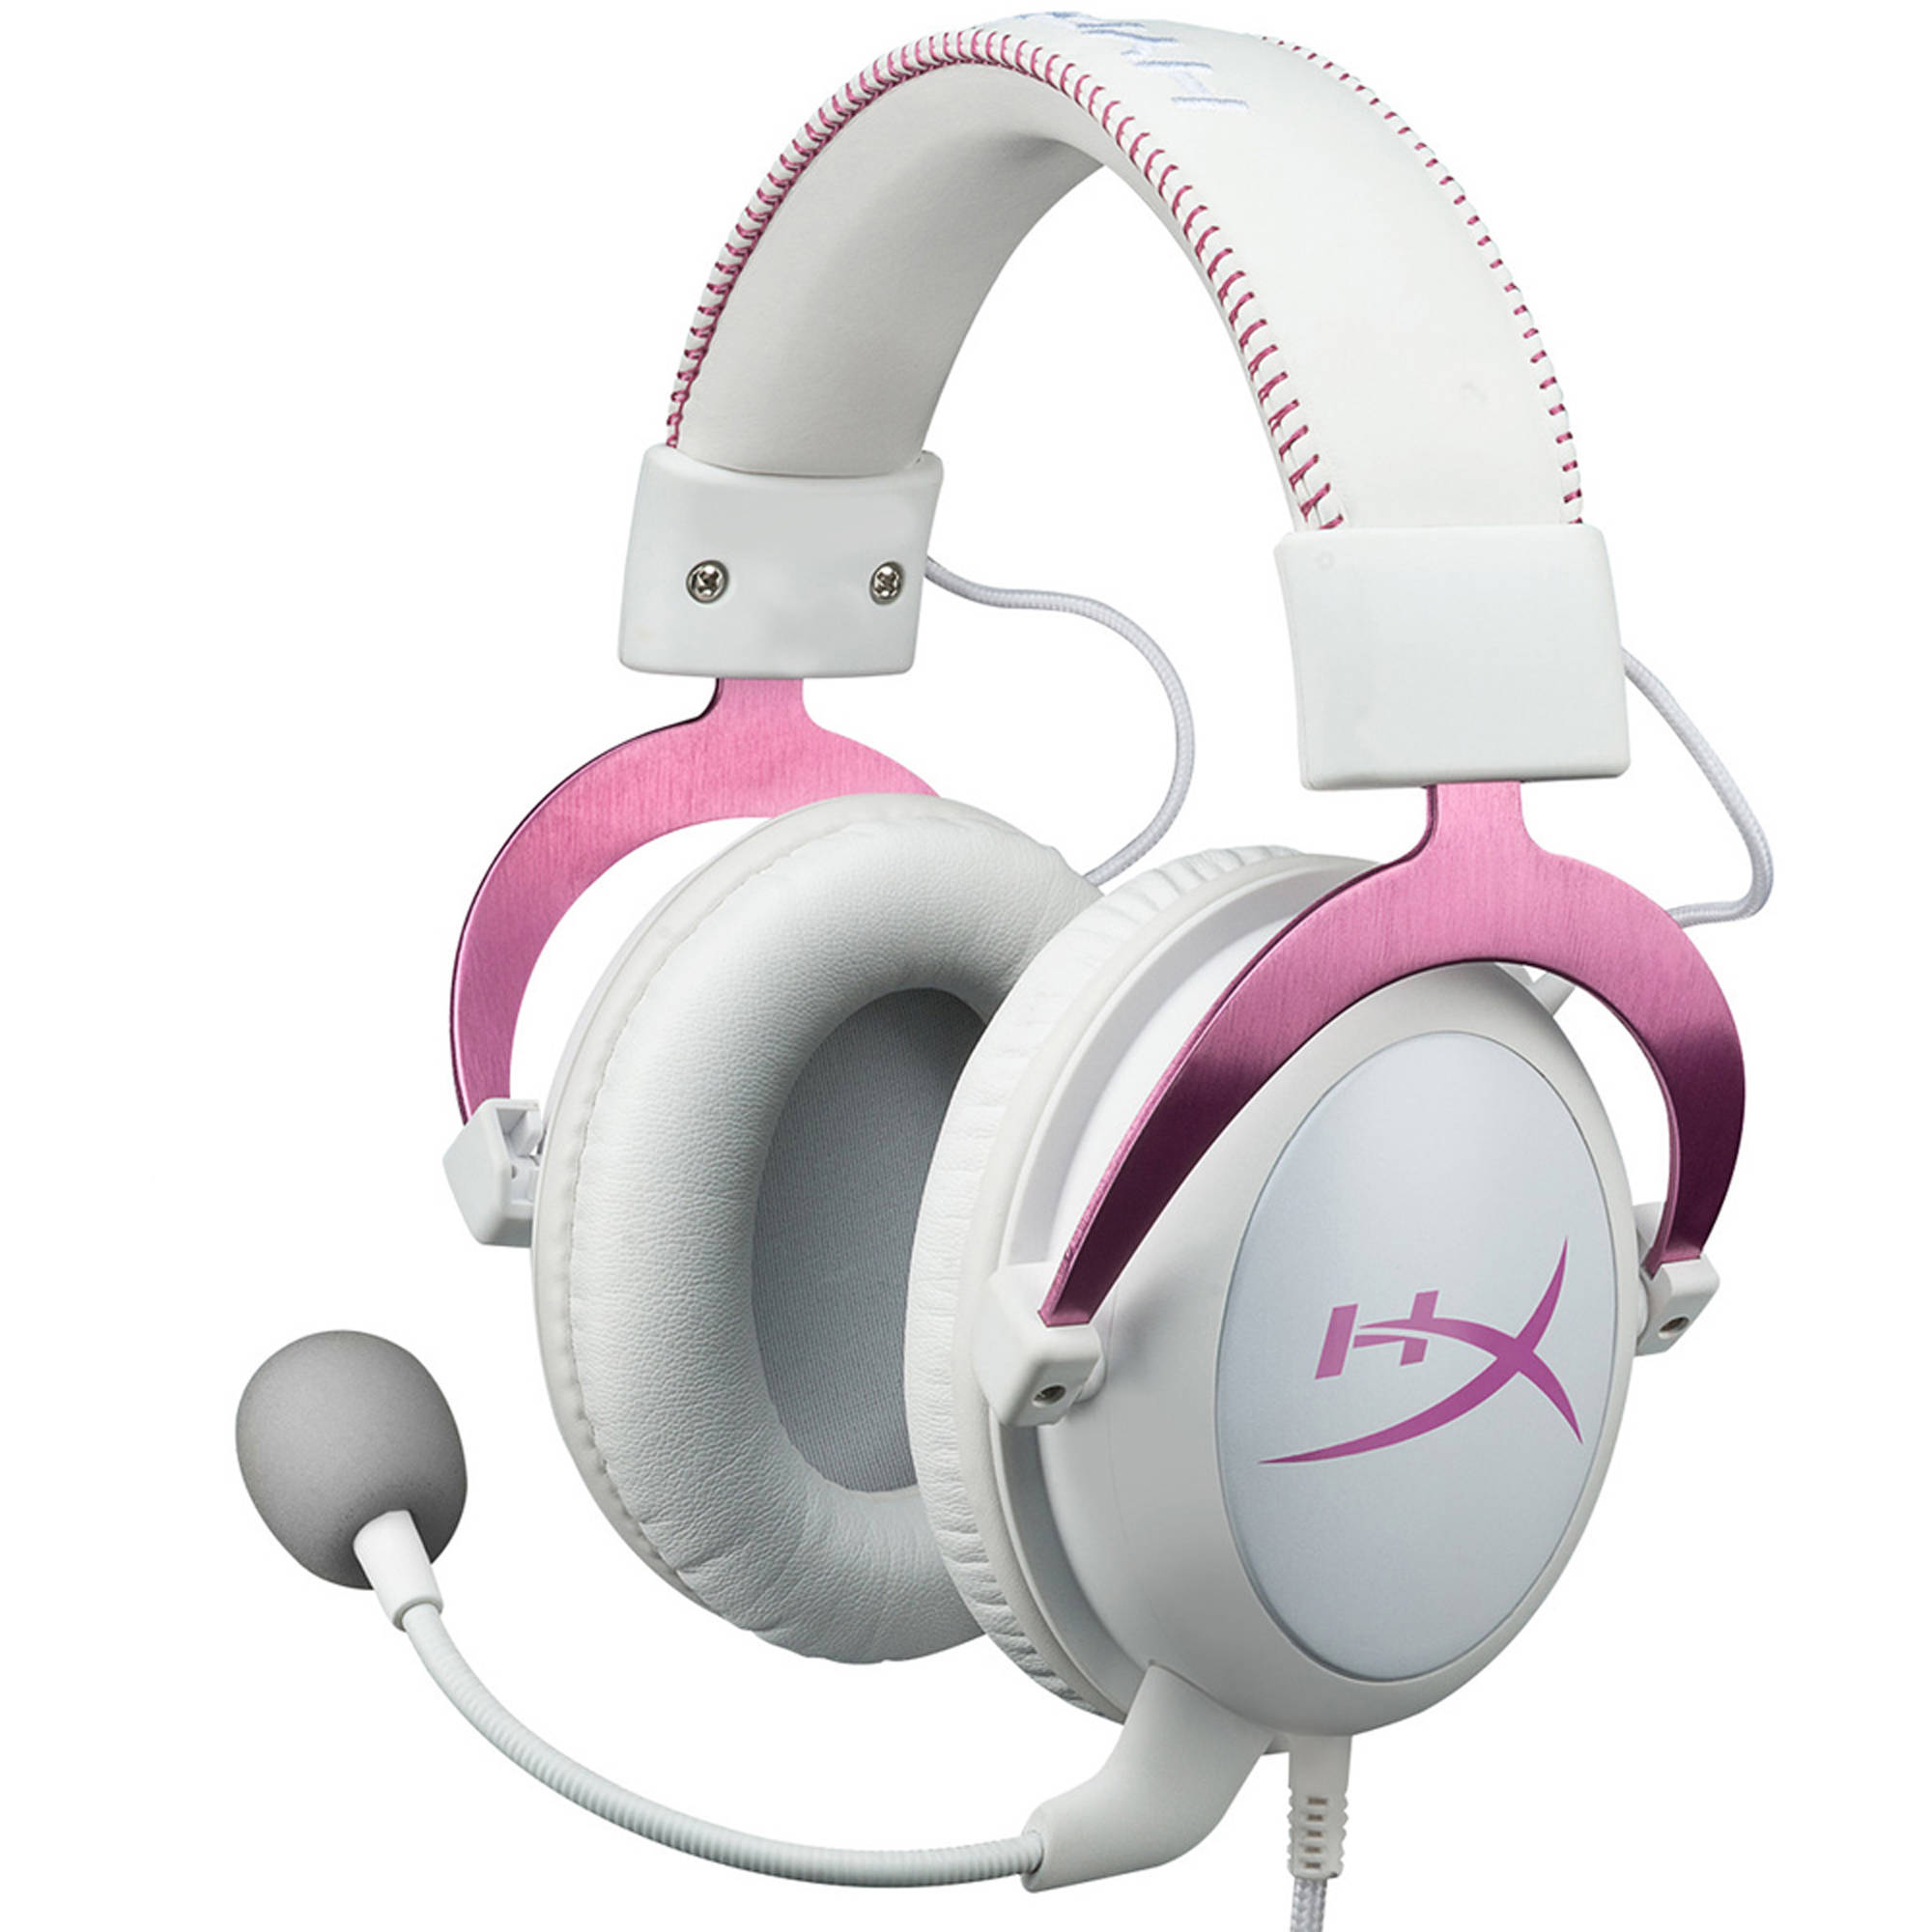 Kingston HyperX Cloud Gaming Headset, Pink